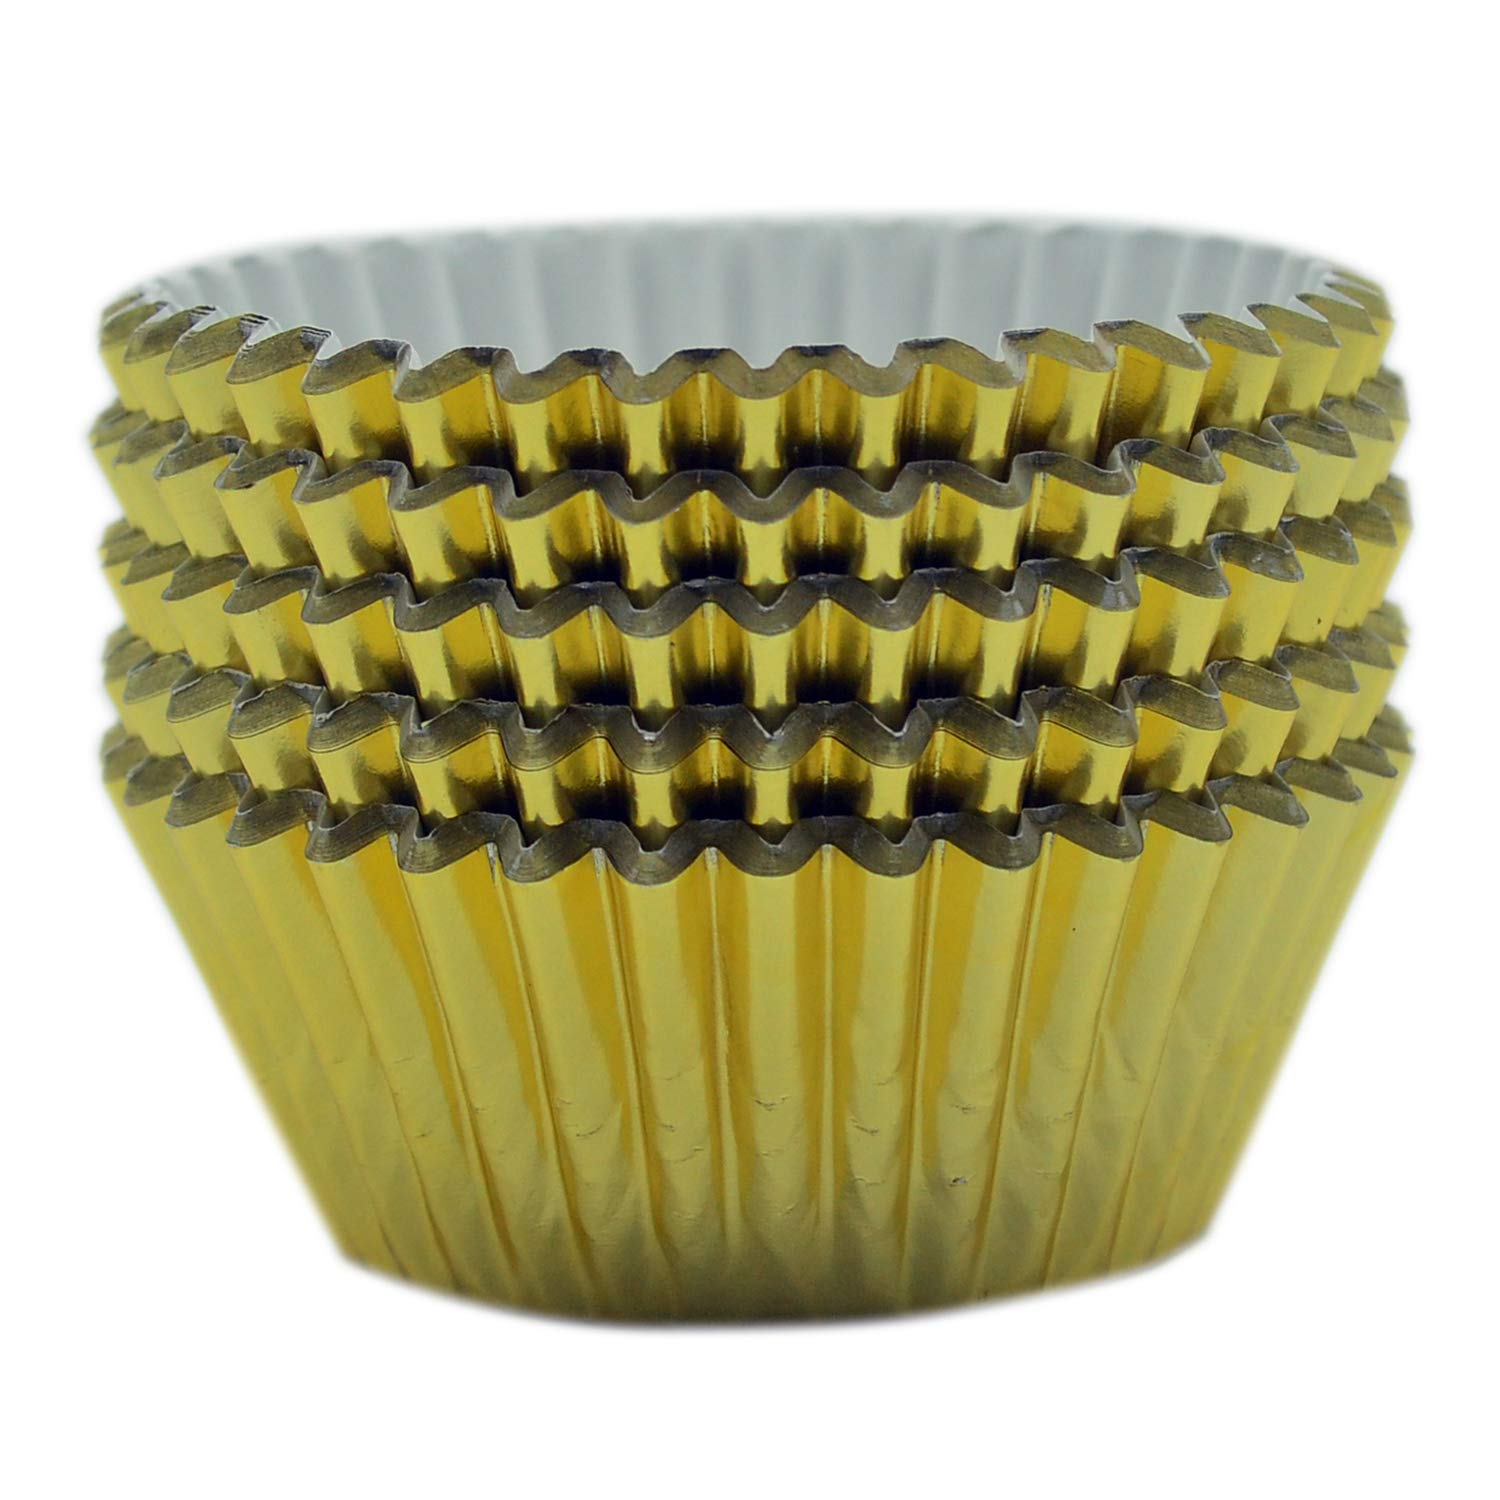 Mombake Standard Gold Foil Cupcake Liners Muffin Baking Cups for Party and More, 200-Count